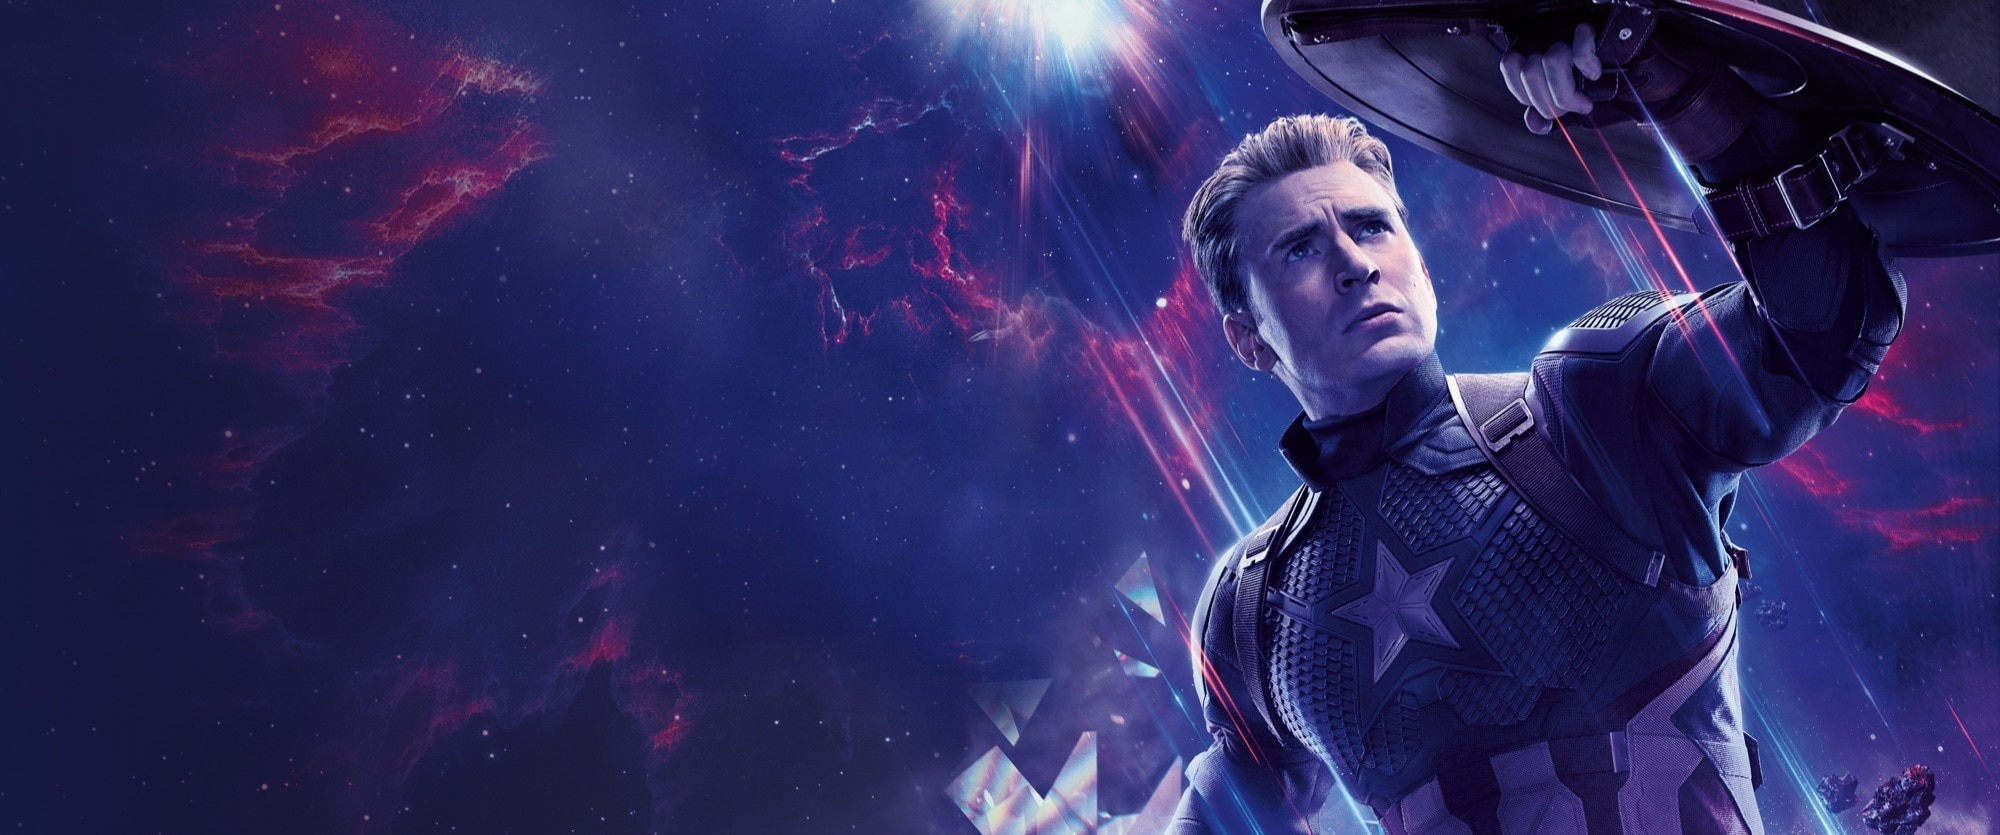 Avengers: Endgame | Ab 24. April im Kino